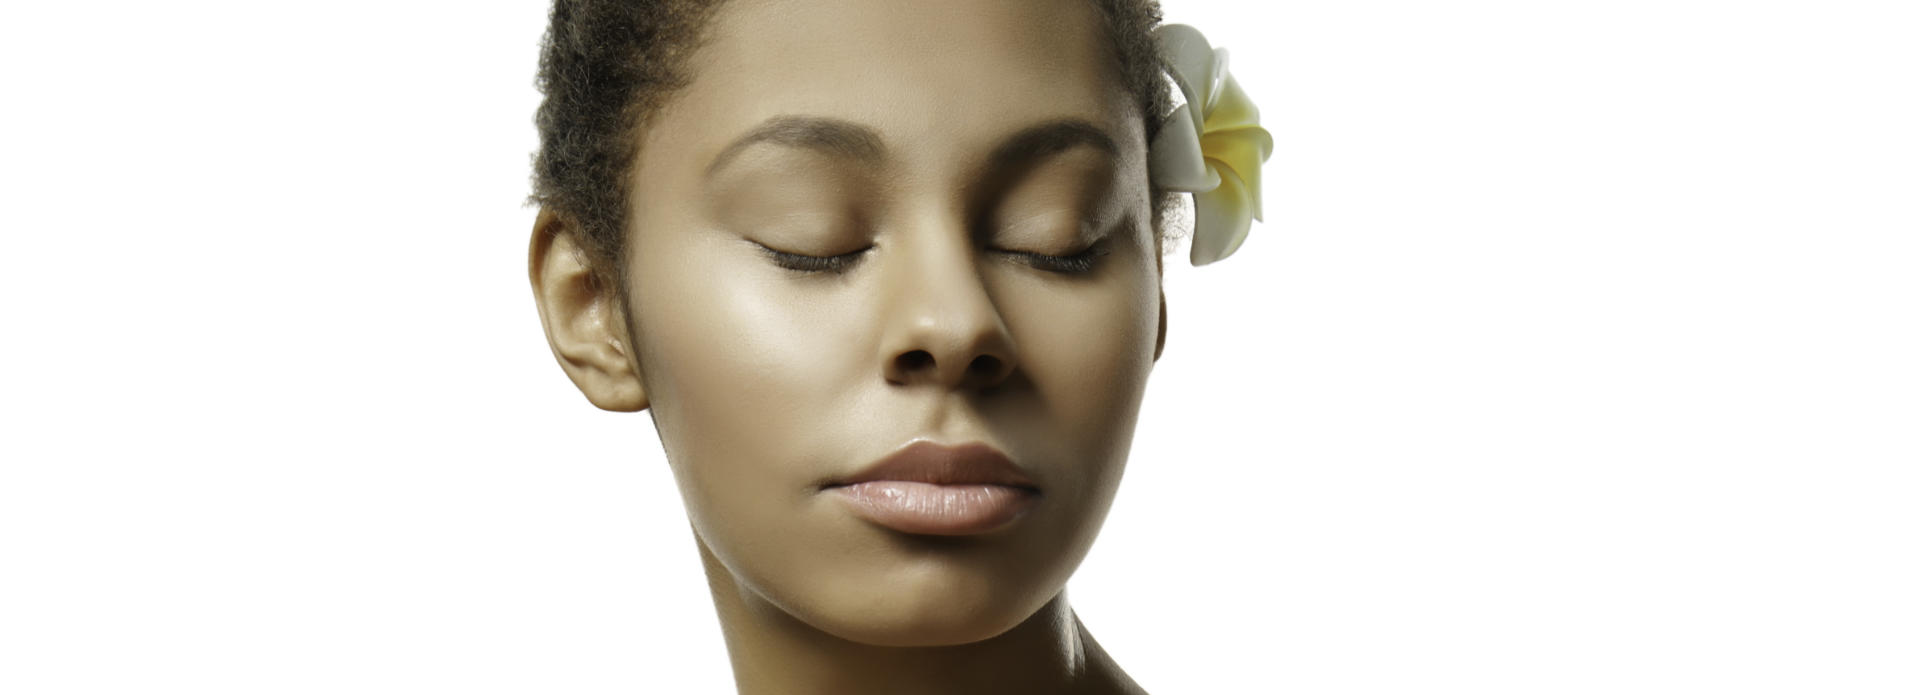 Youthful smooth face of an Afro-American woman with closed eyes and a flower behind her left ear.